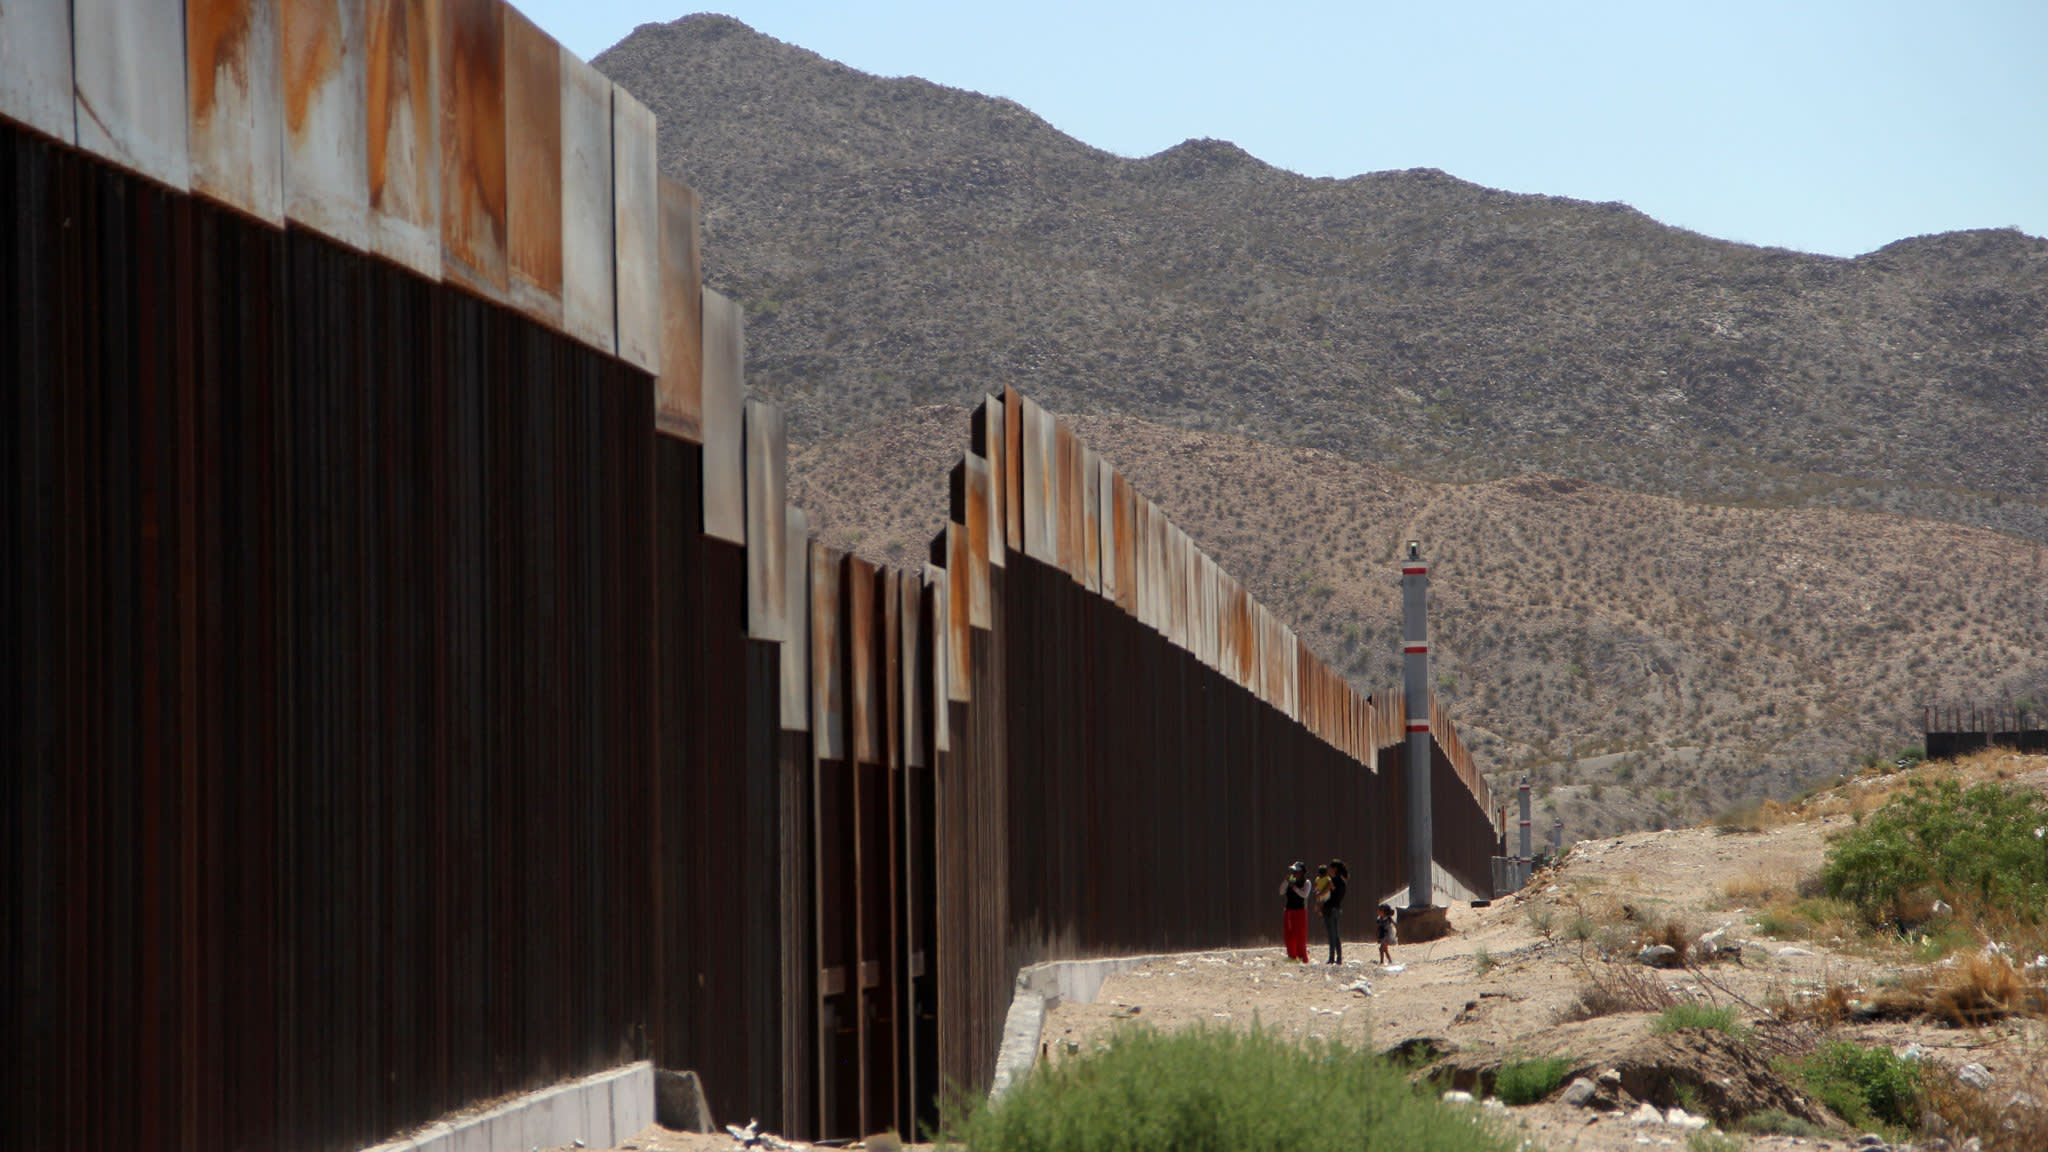 Battle lines are drawn over legal immigration in US